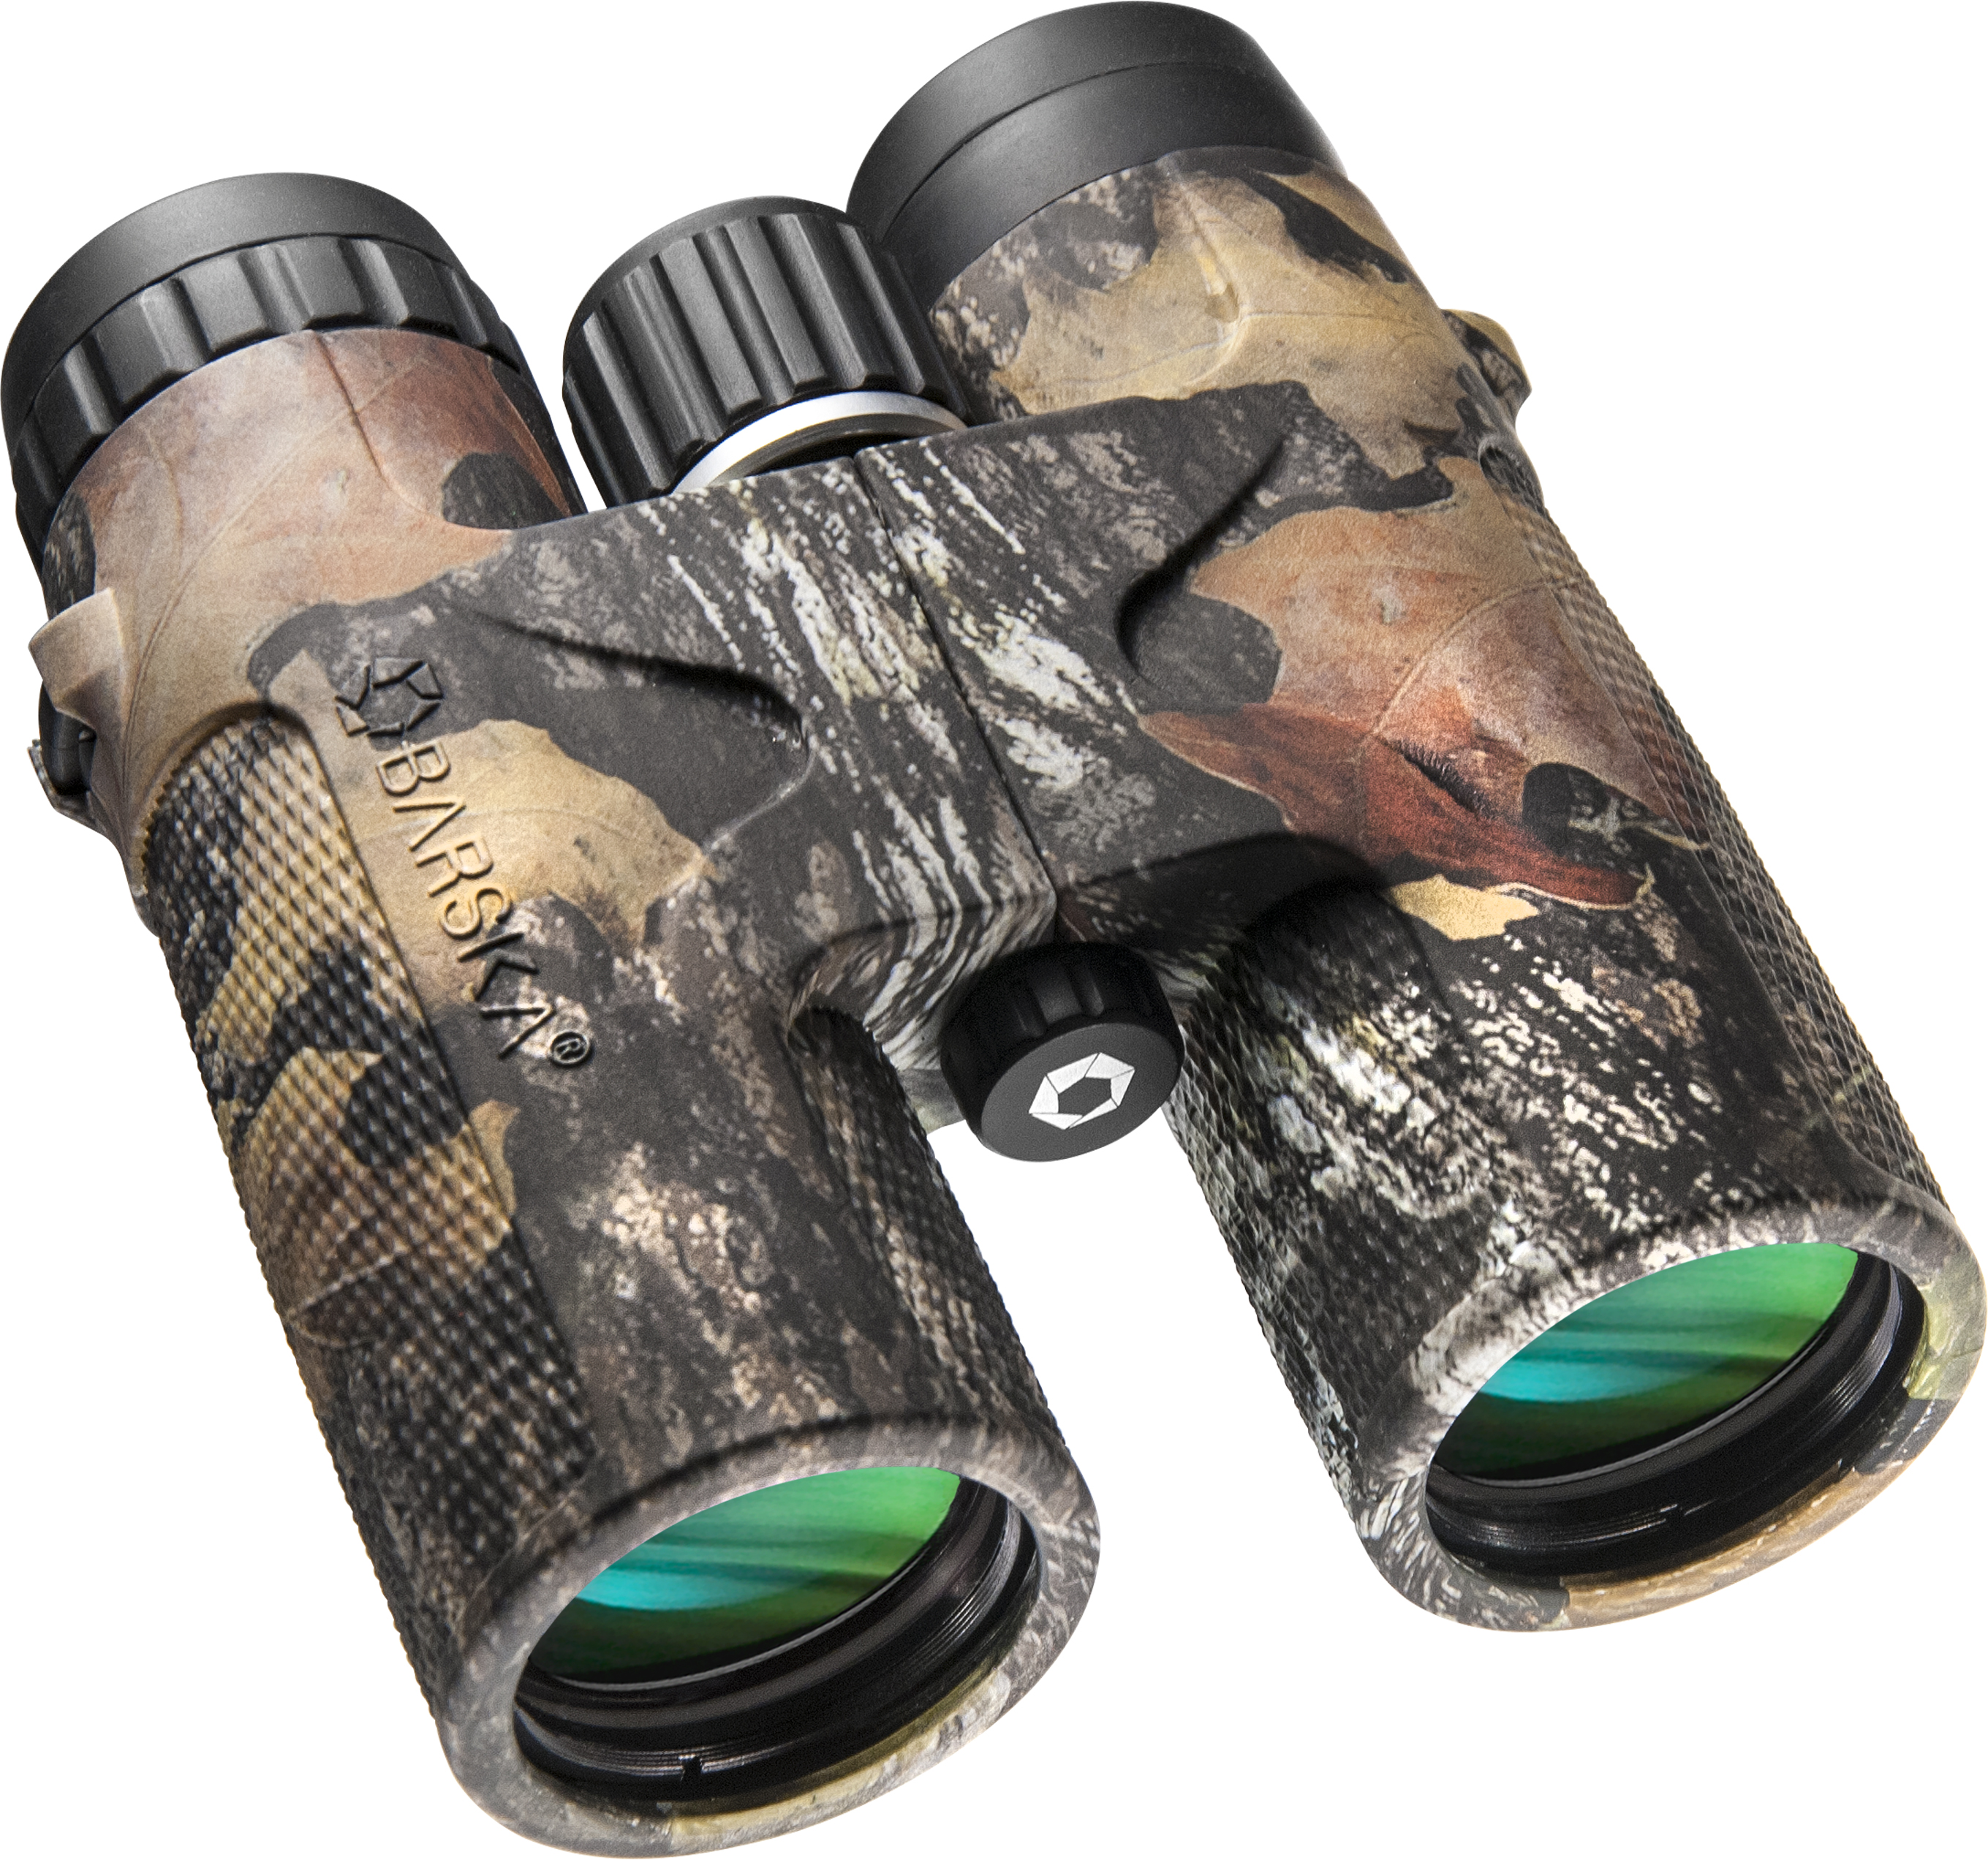 12x42mm WP Blackhawk Mossy Oak® Break-Up® Camo Binoculars